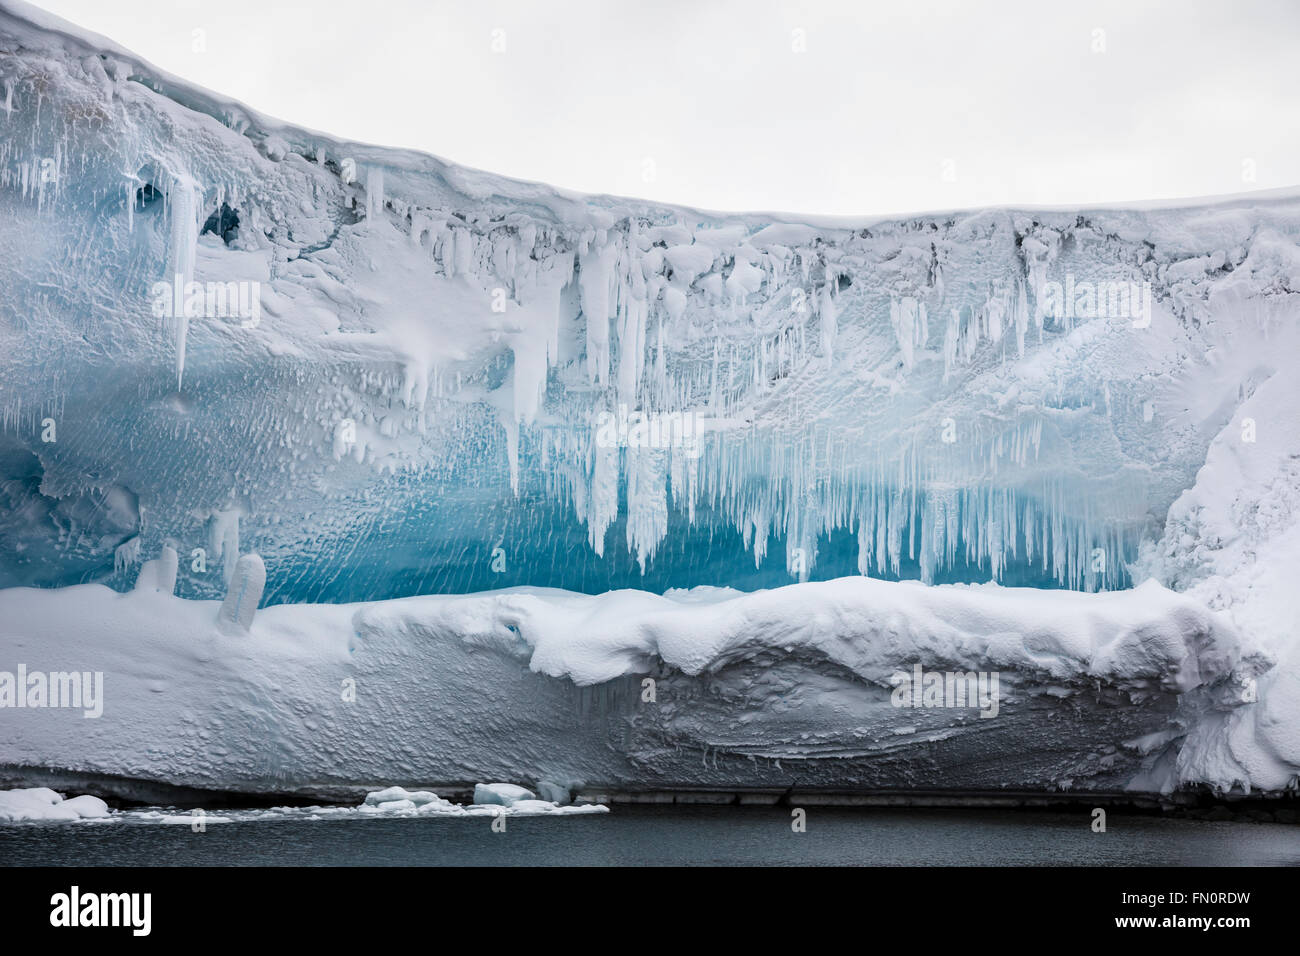 Antarctica, Antarctic peninsula, Fish Islands, icicles on ice overhang or cave - Stock Image